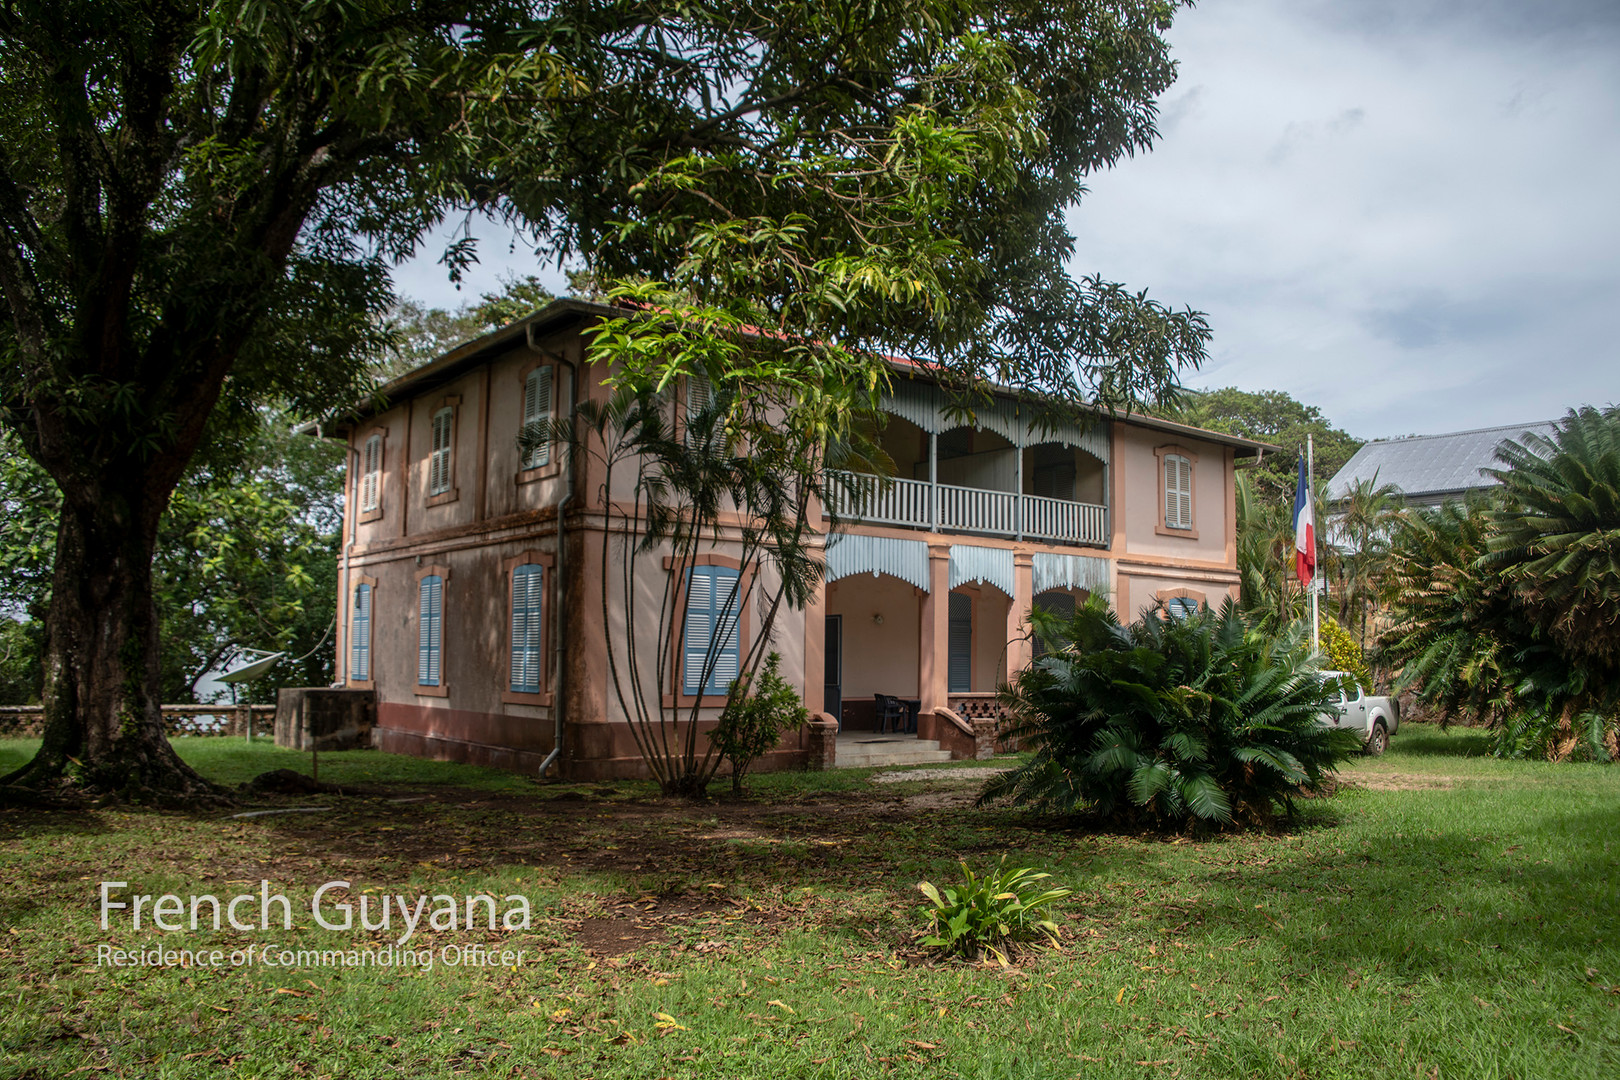 2019-05-17 French Guyana POW (44) 452A69